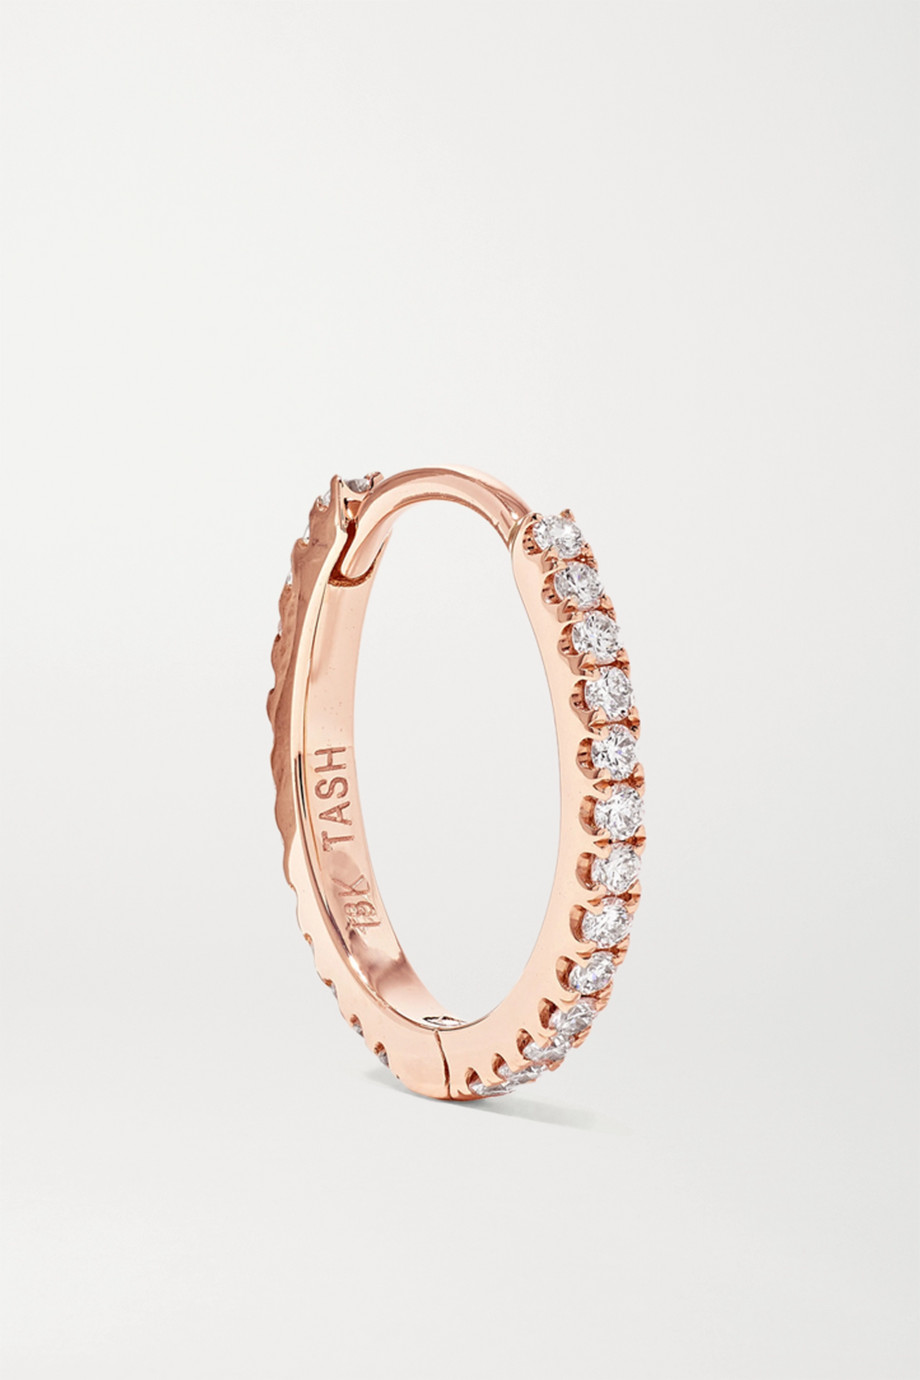 Maria Tash Eternity 9.5mm 18-karat rose gold diamond hoop earring